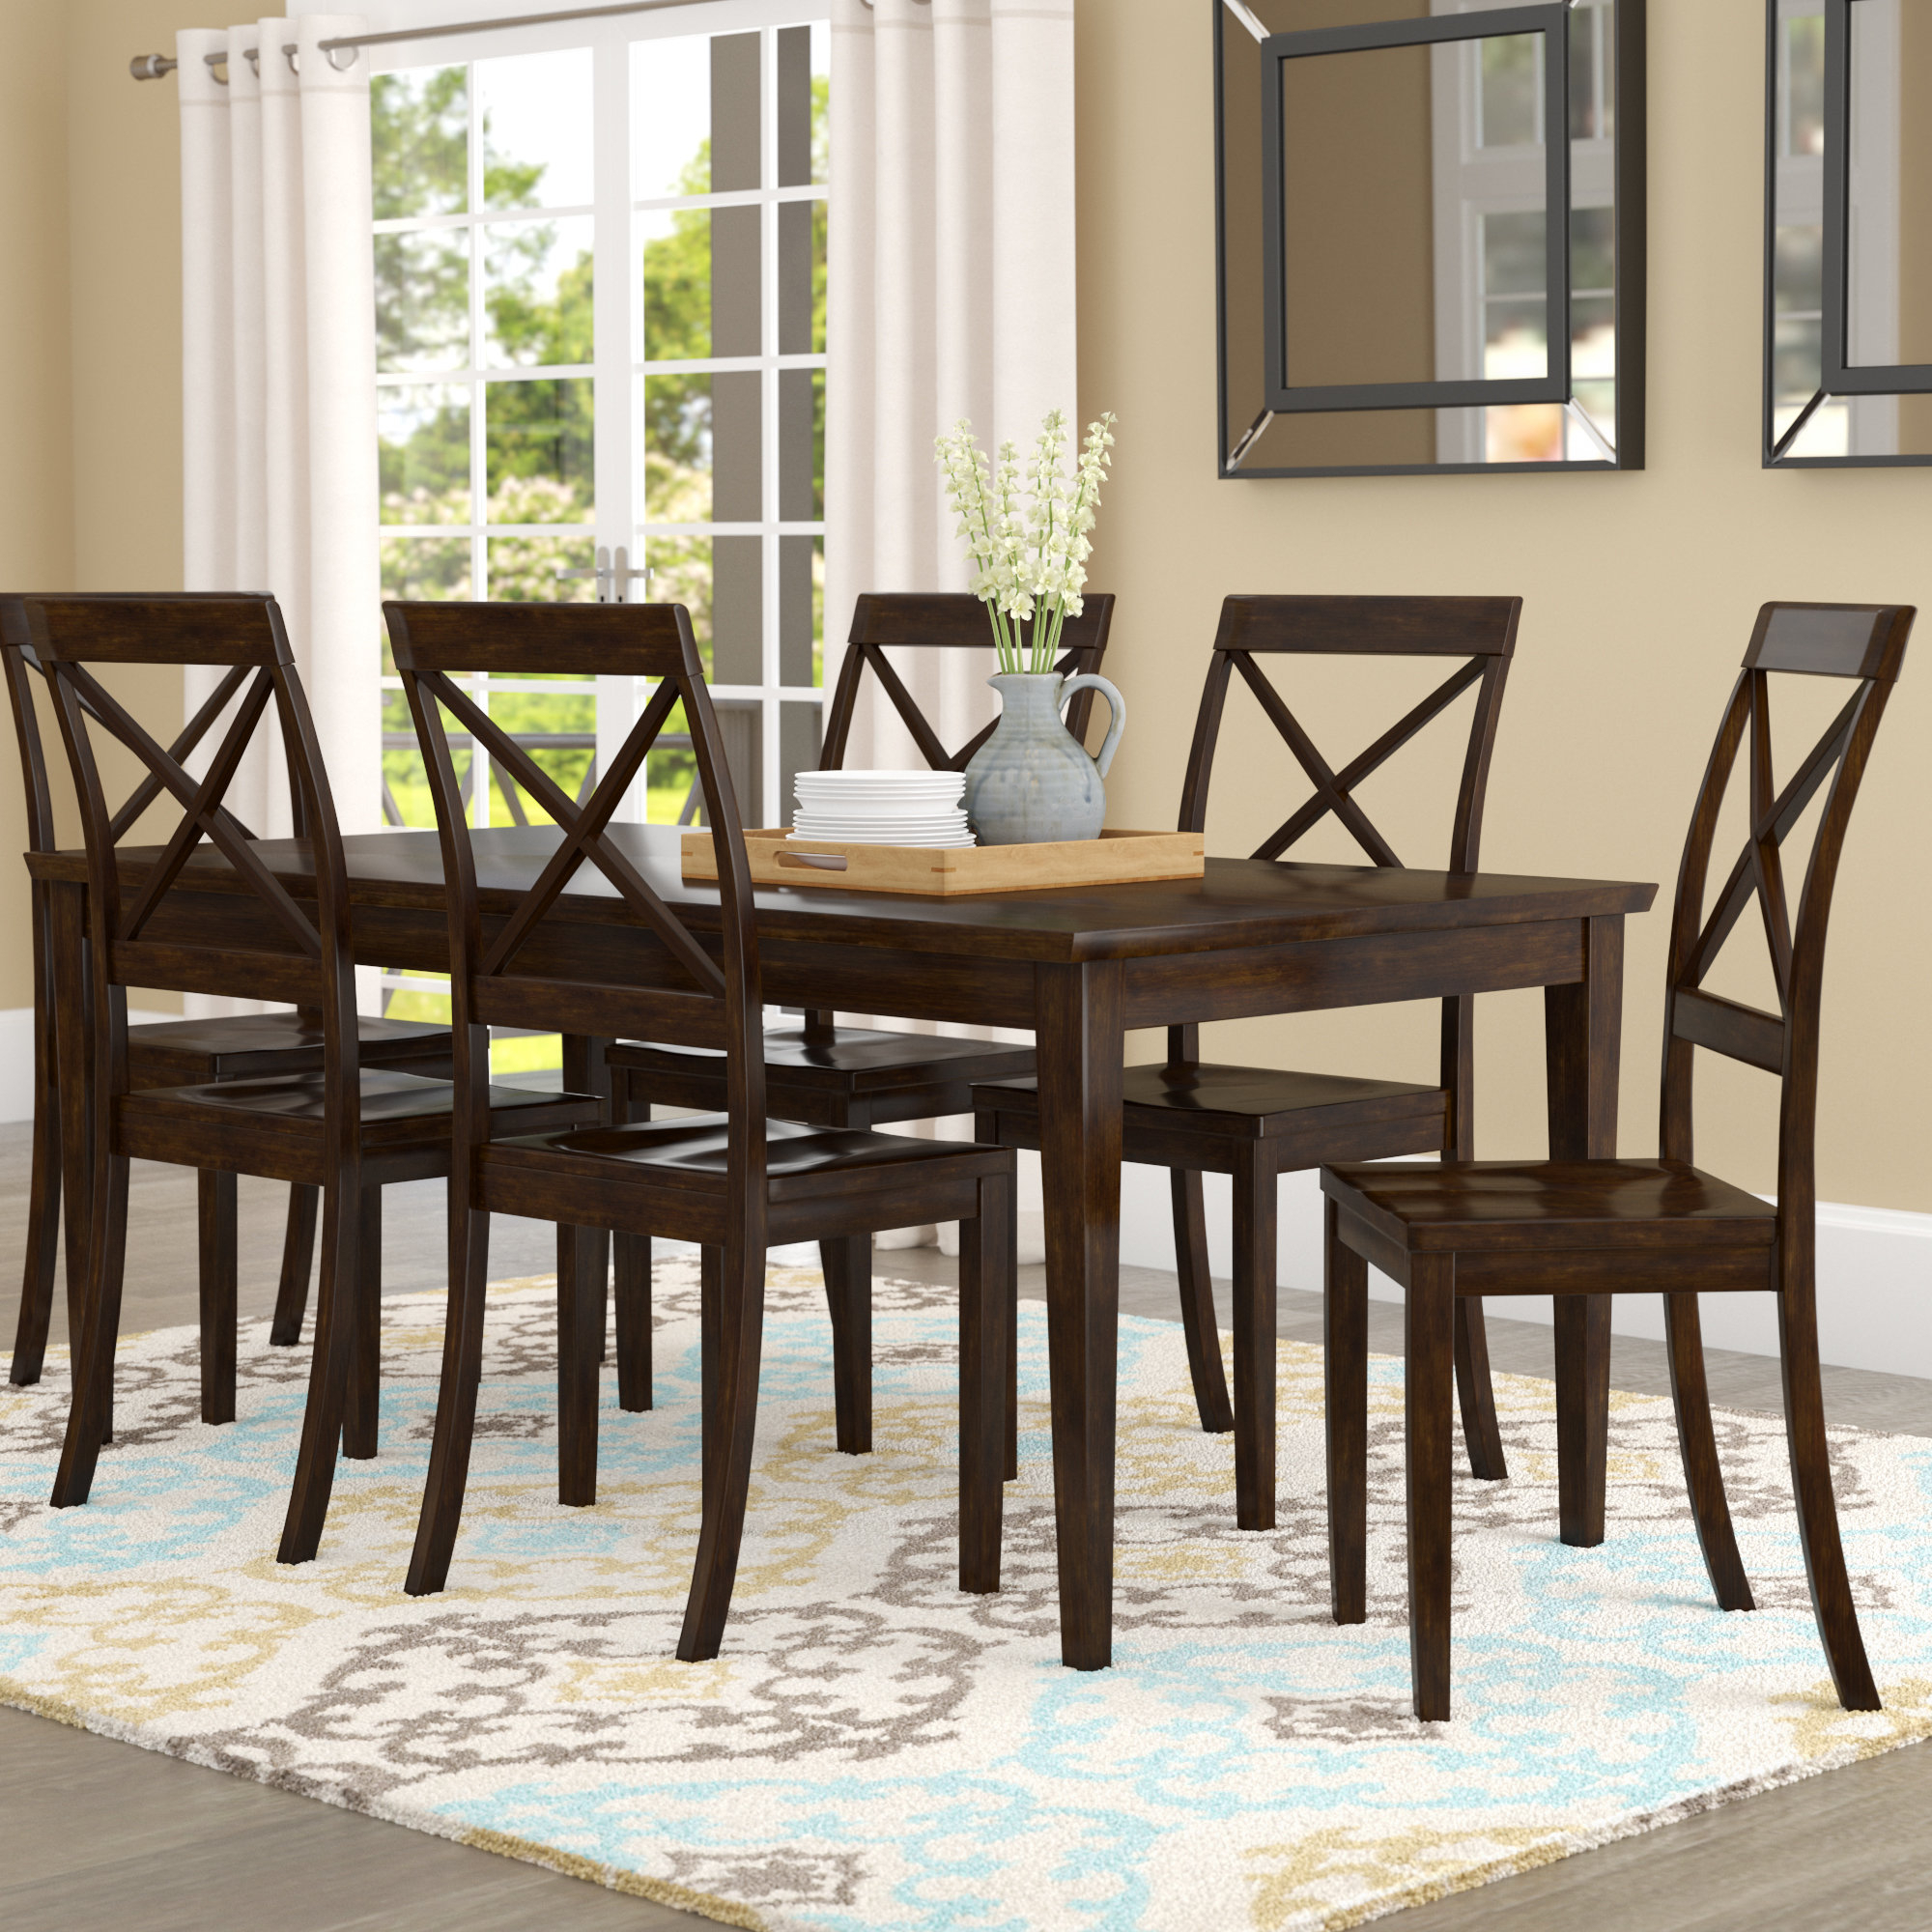 Wayfair With Smyrna 3 Piece Dining Sets (View 23 of 25)